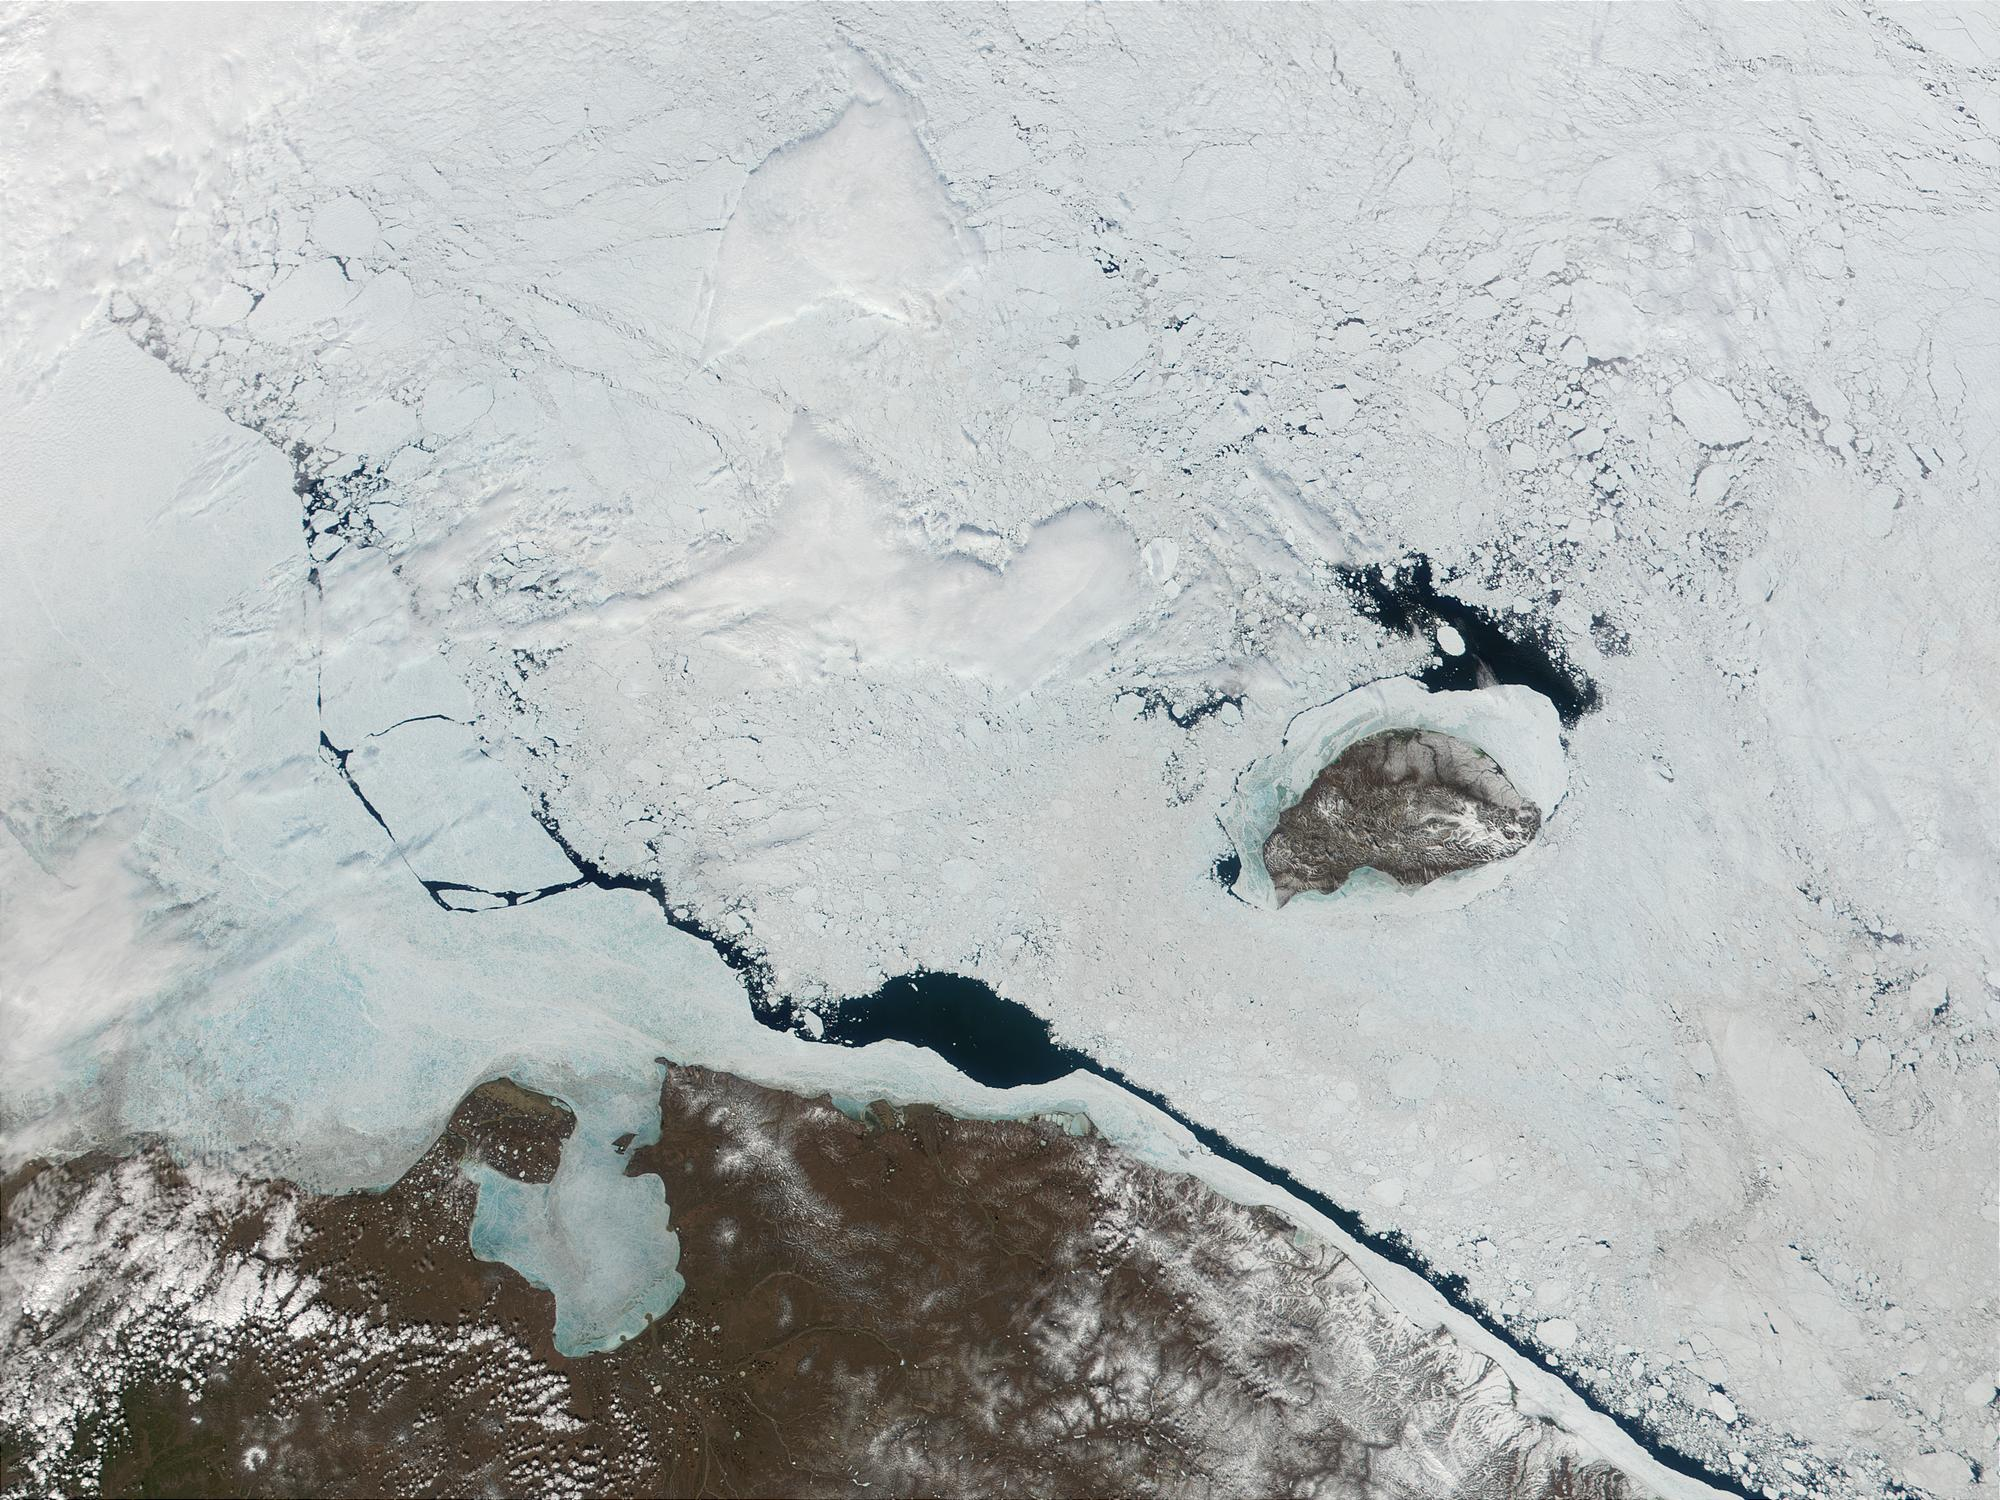 Wrangel Island, East Siberia, Russia - related image preview